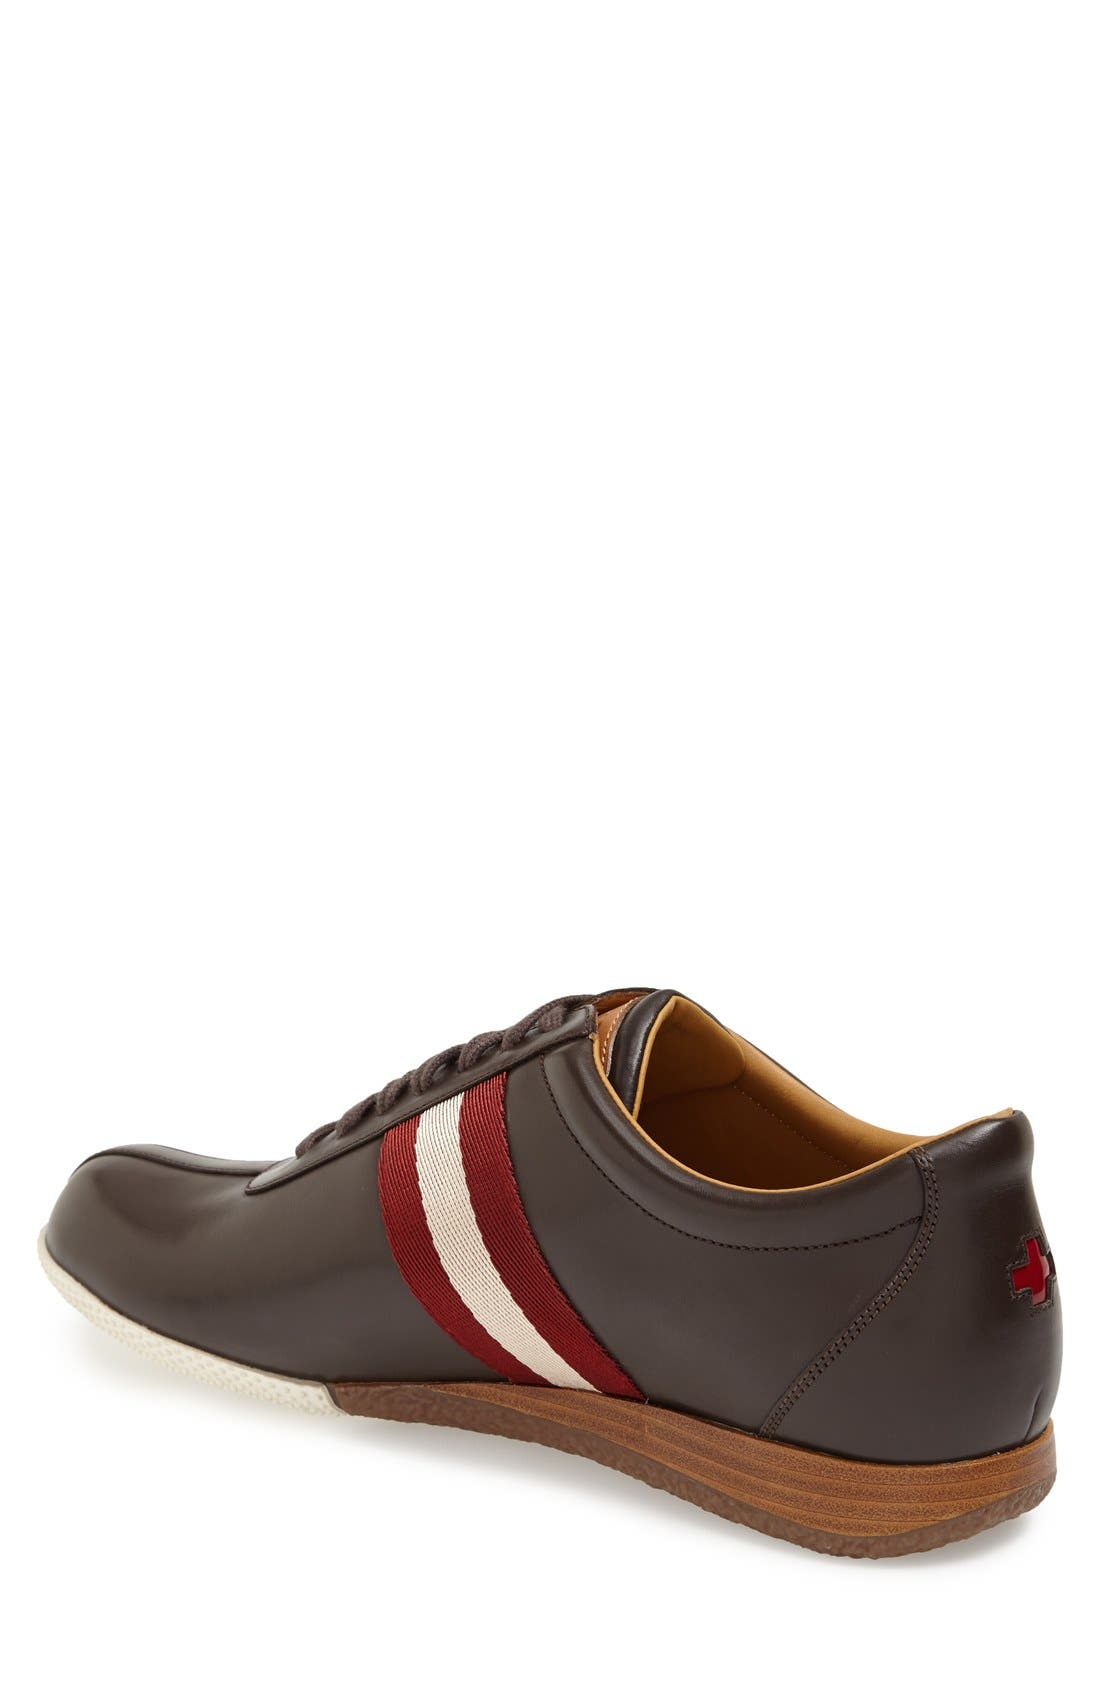 Alternate Image 2  - Bally 'Freenew' Leather Sneaker (Online Only)